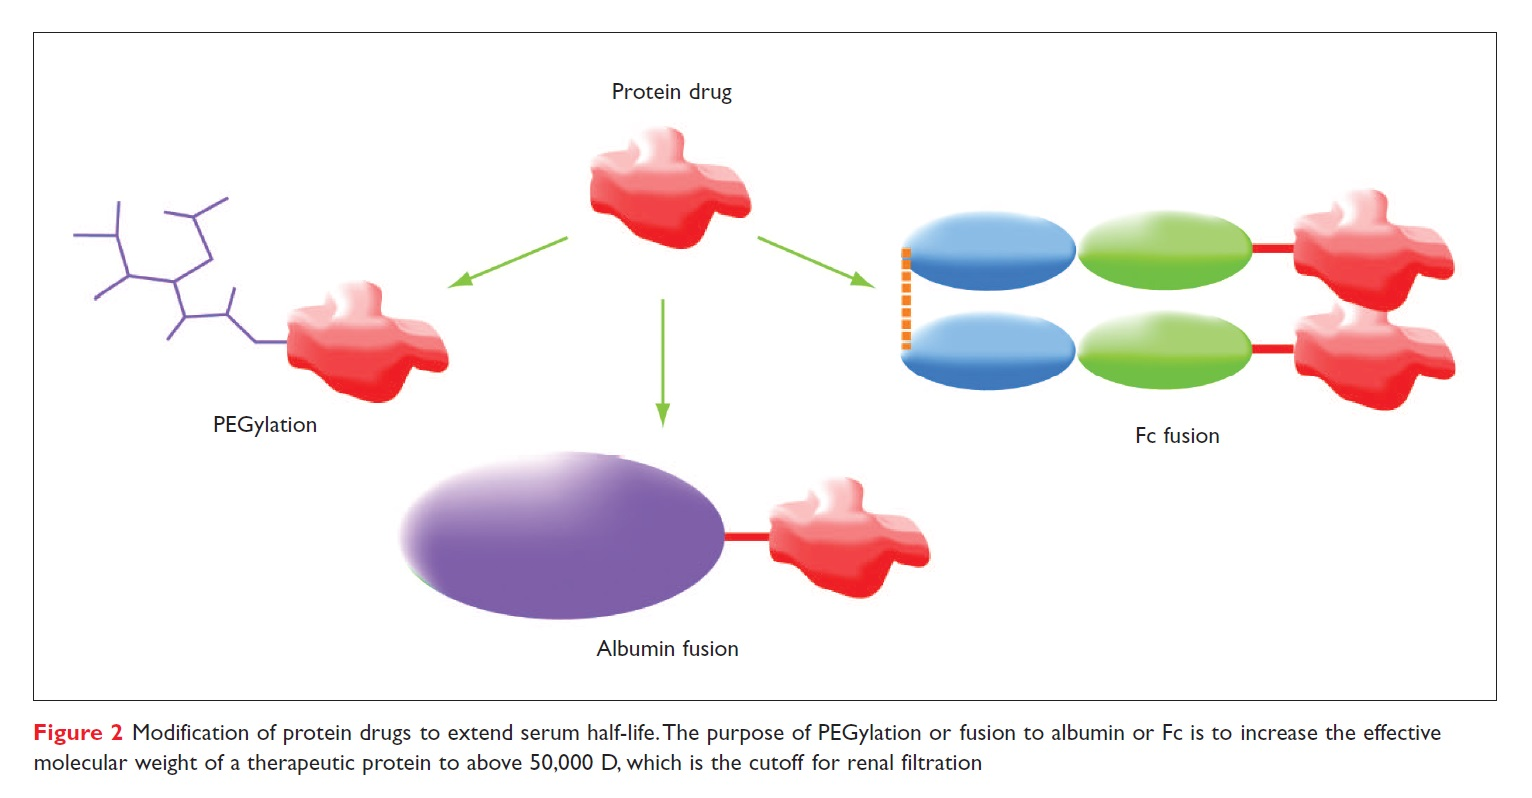 Figure 2 Modification of protein drugs to extend serum half-life